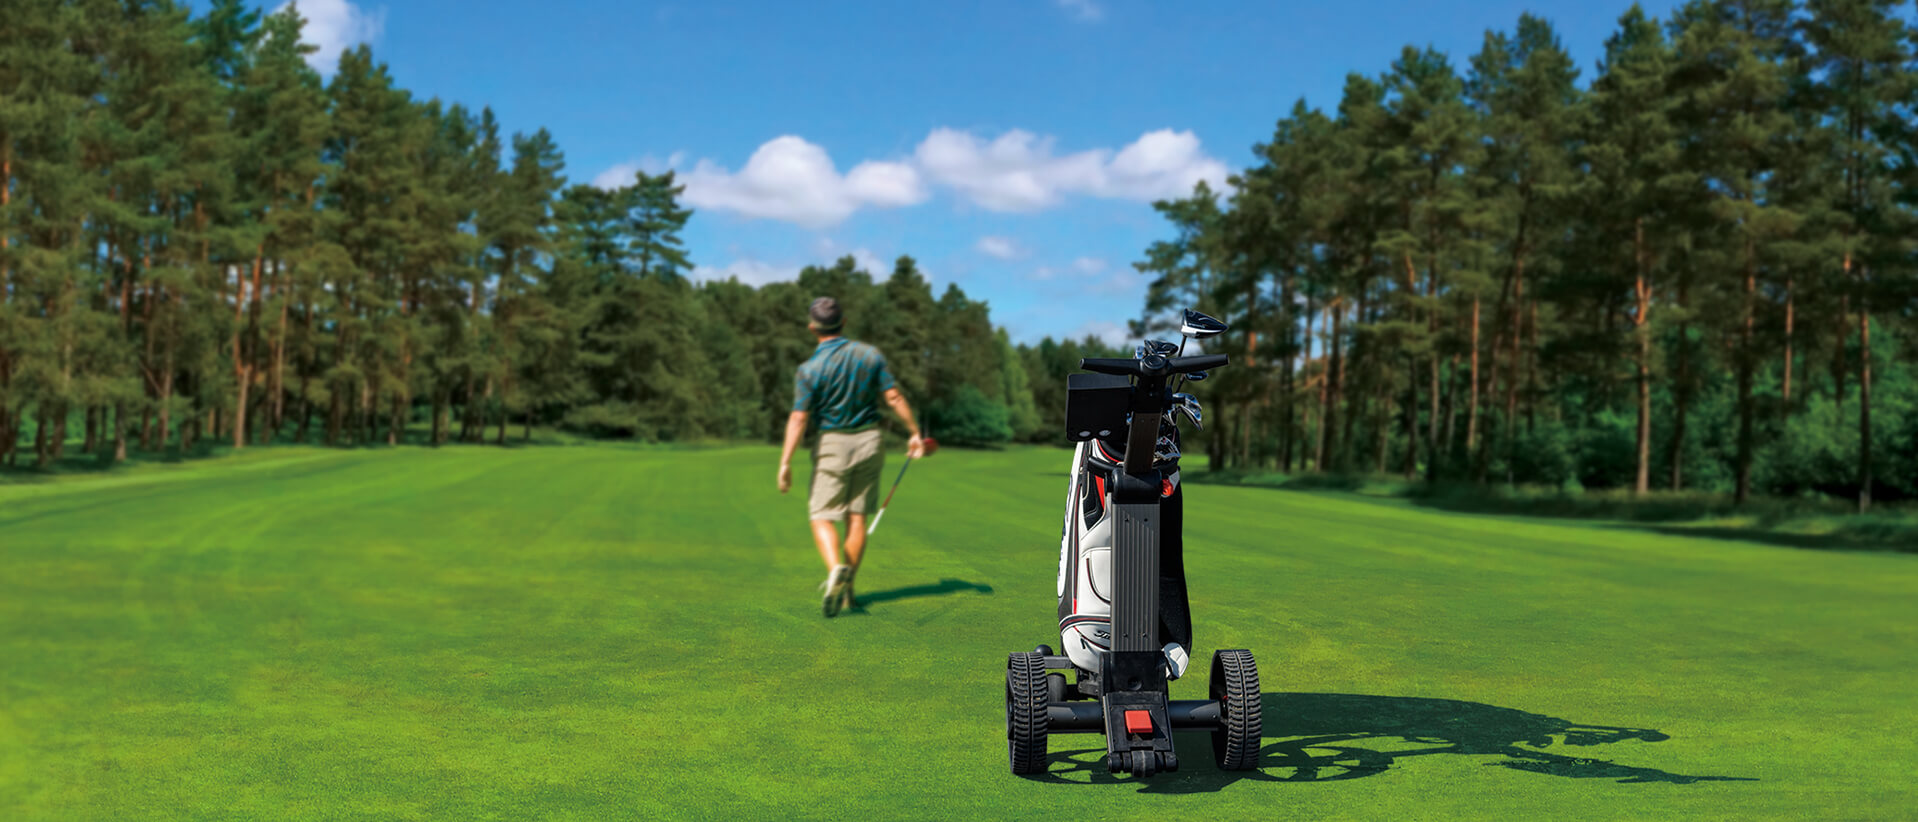 A Foresight Sports Smart Cart in action on a golf course.